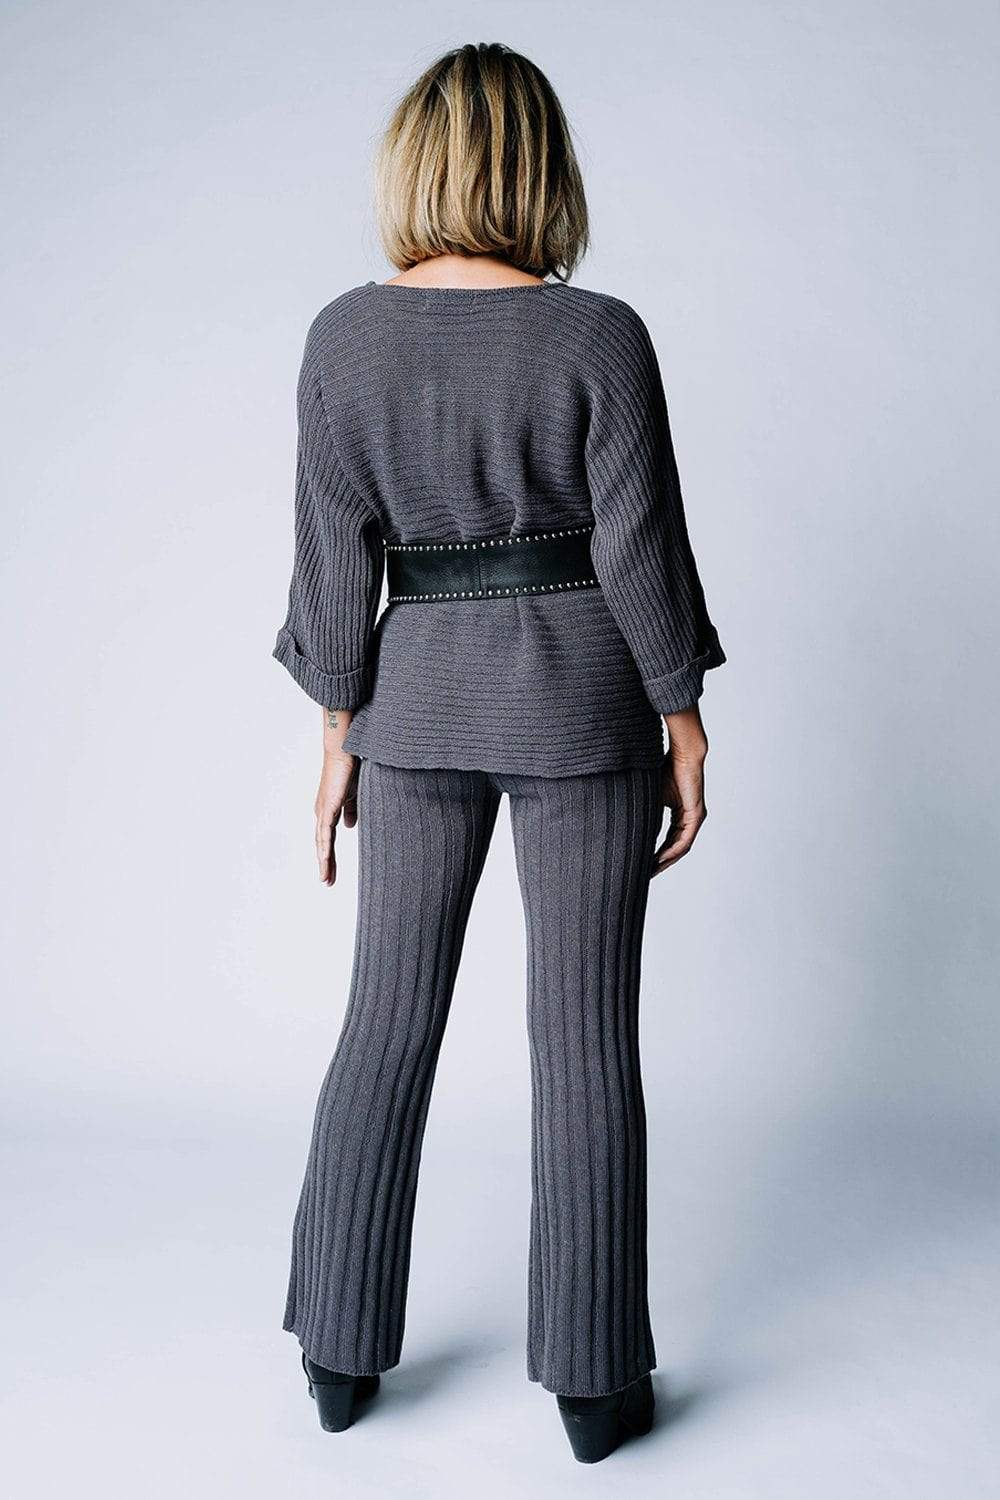 Lasting Lover Knit Set in Charcoal, cladandcloth, n/a.